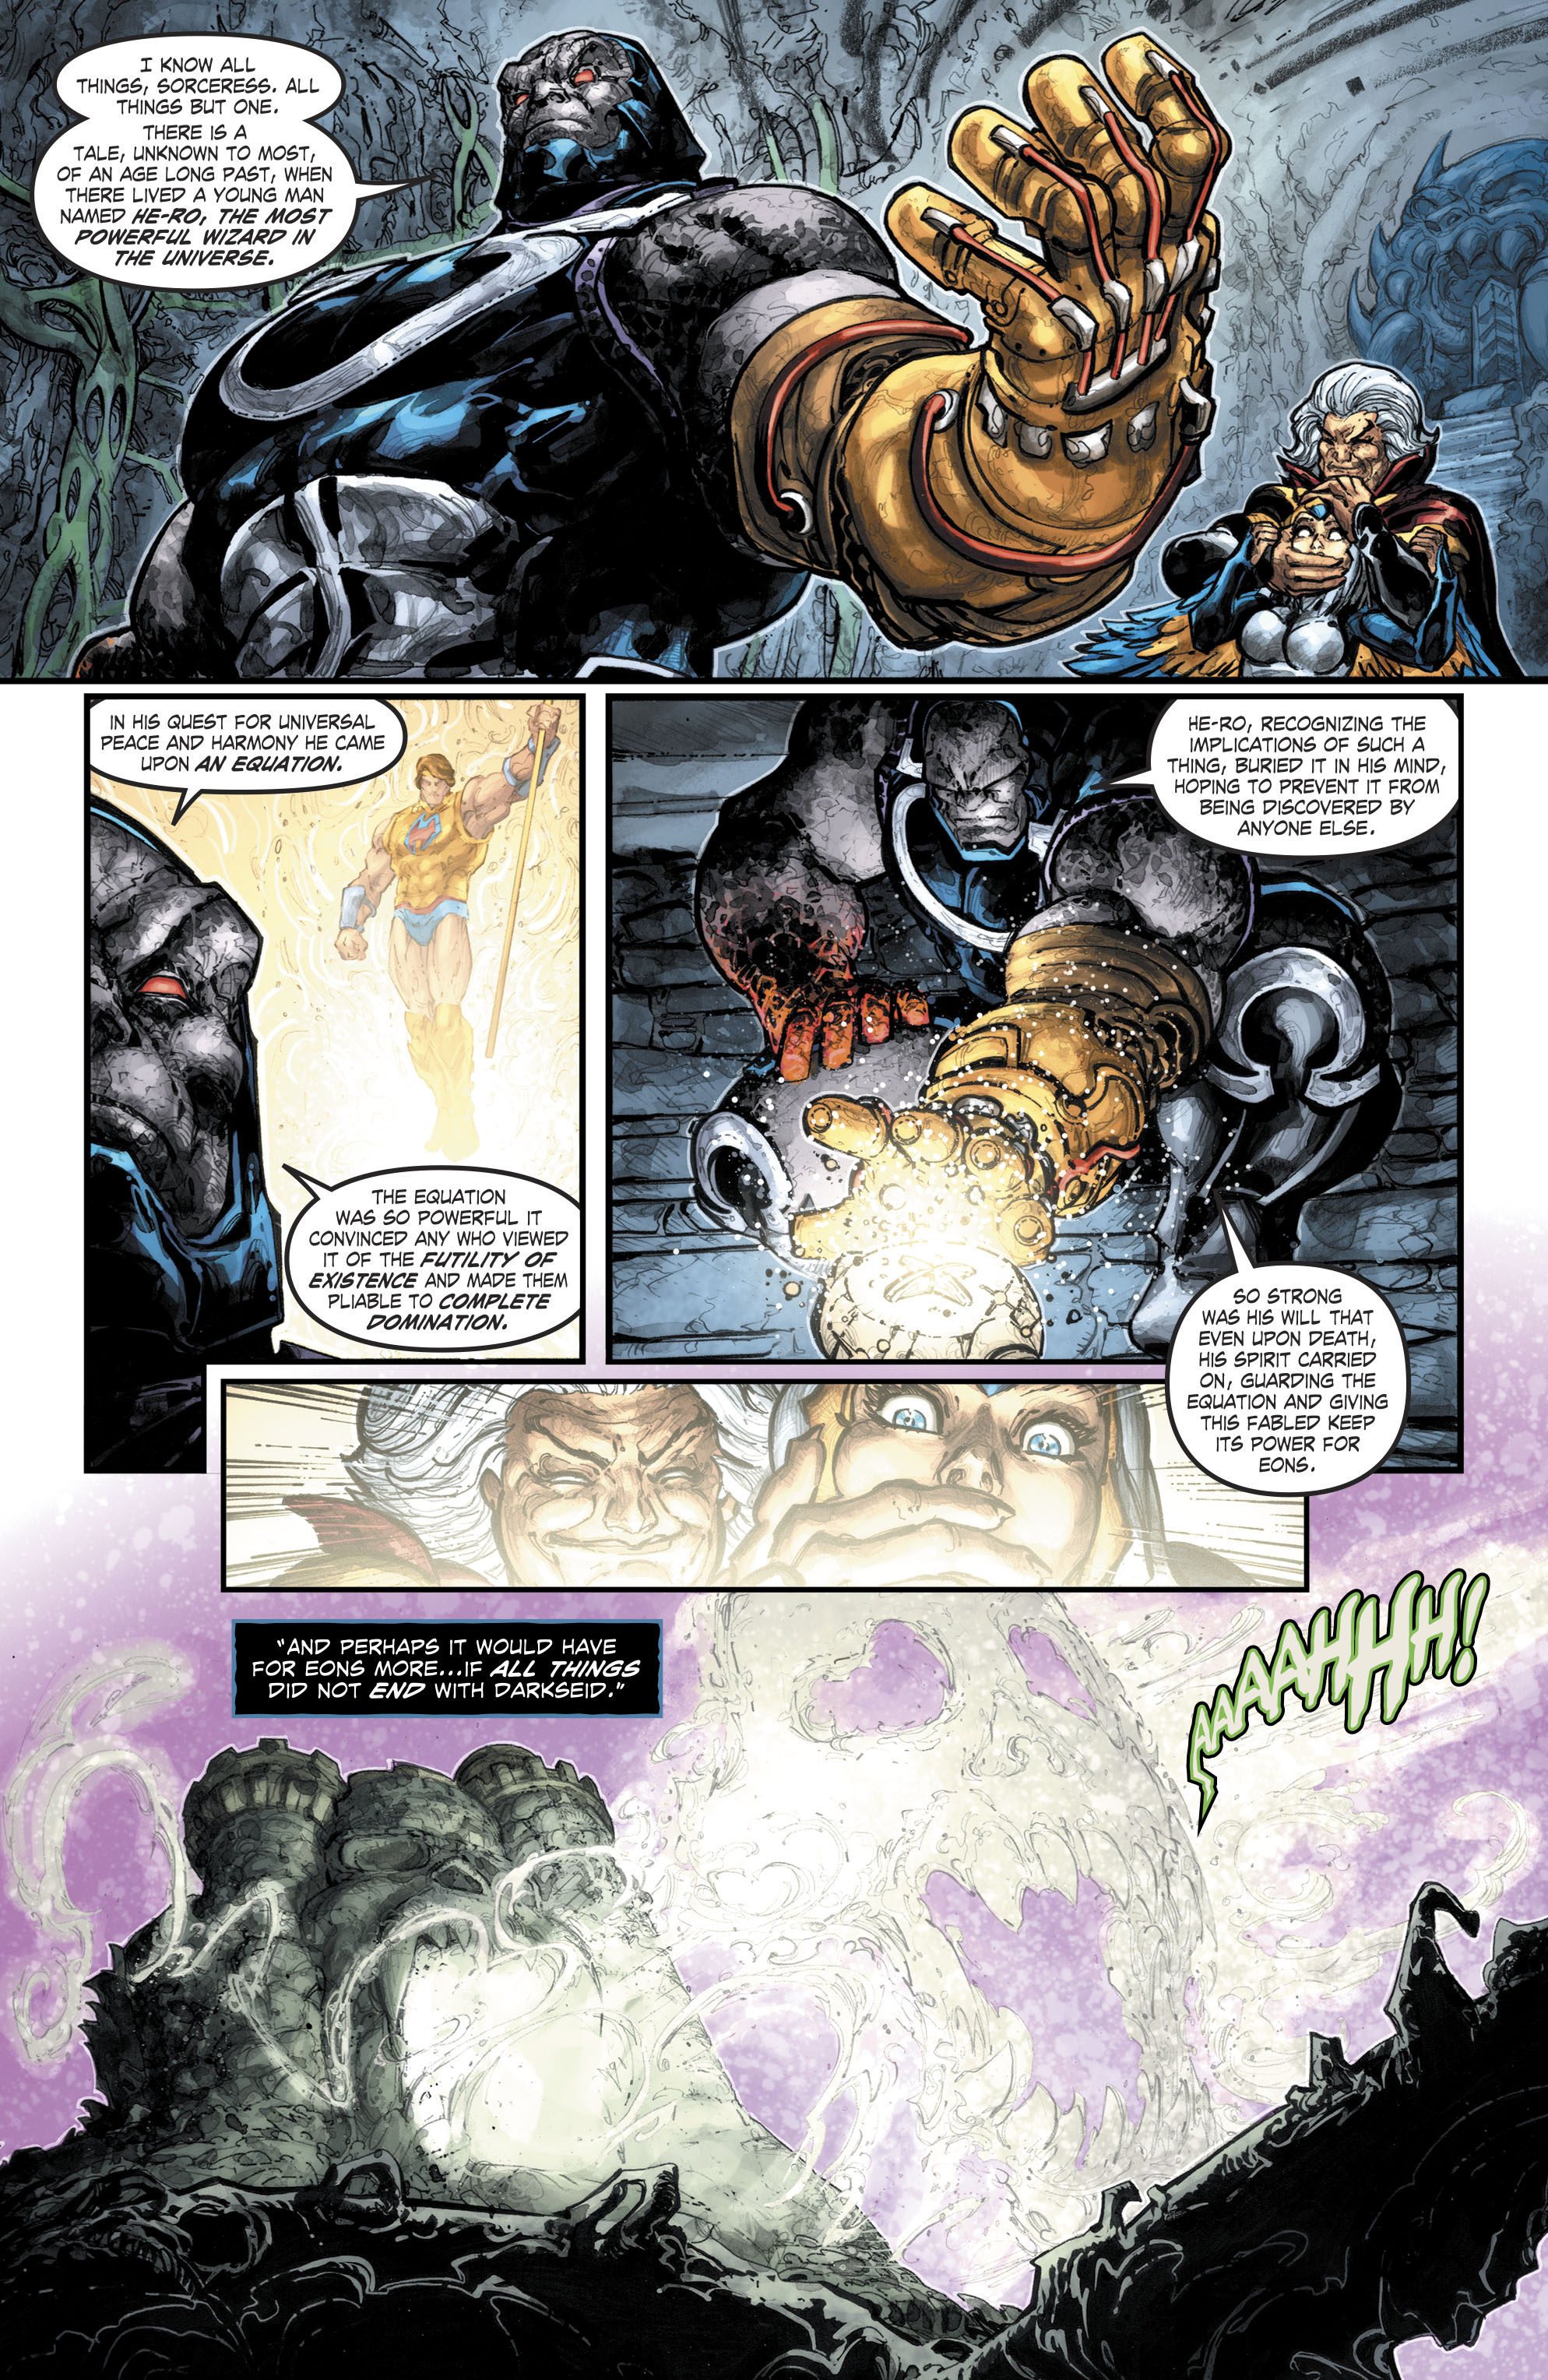 Injustice Vs Masters of the Universe 004 018